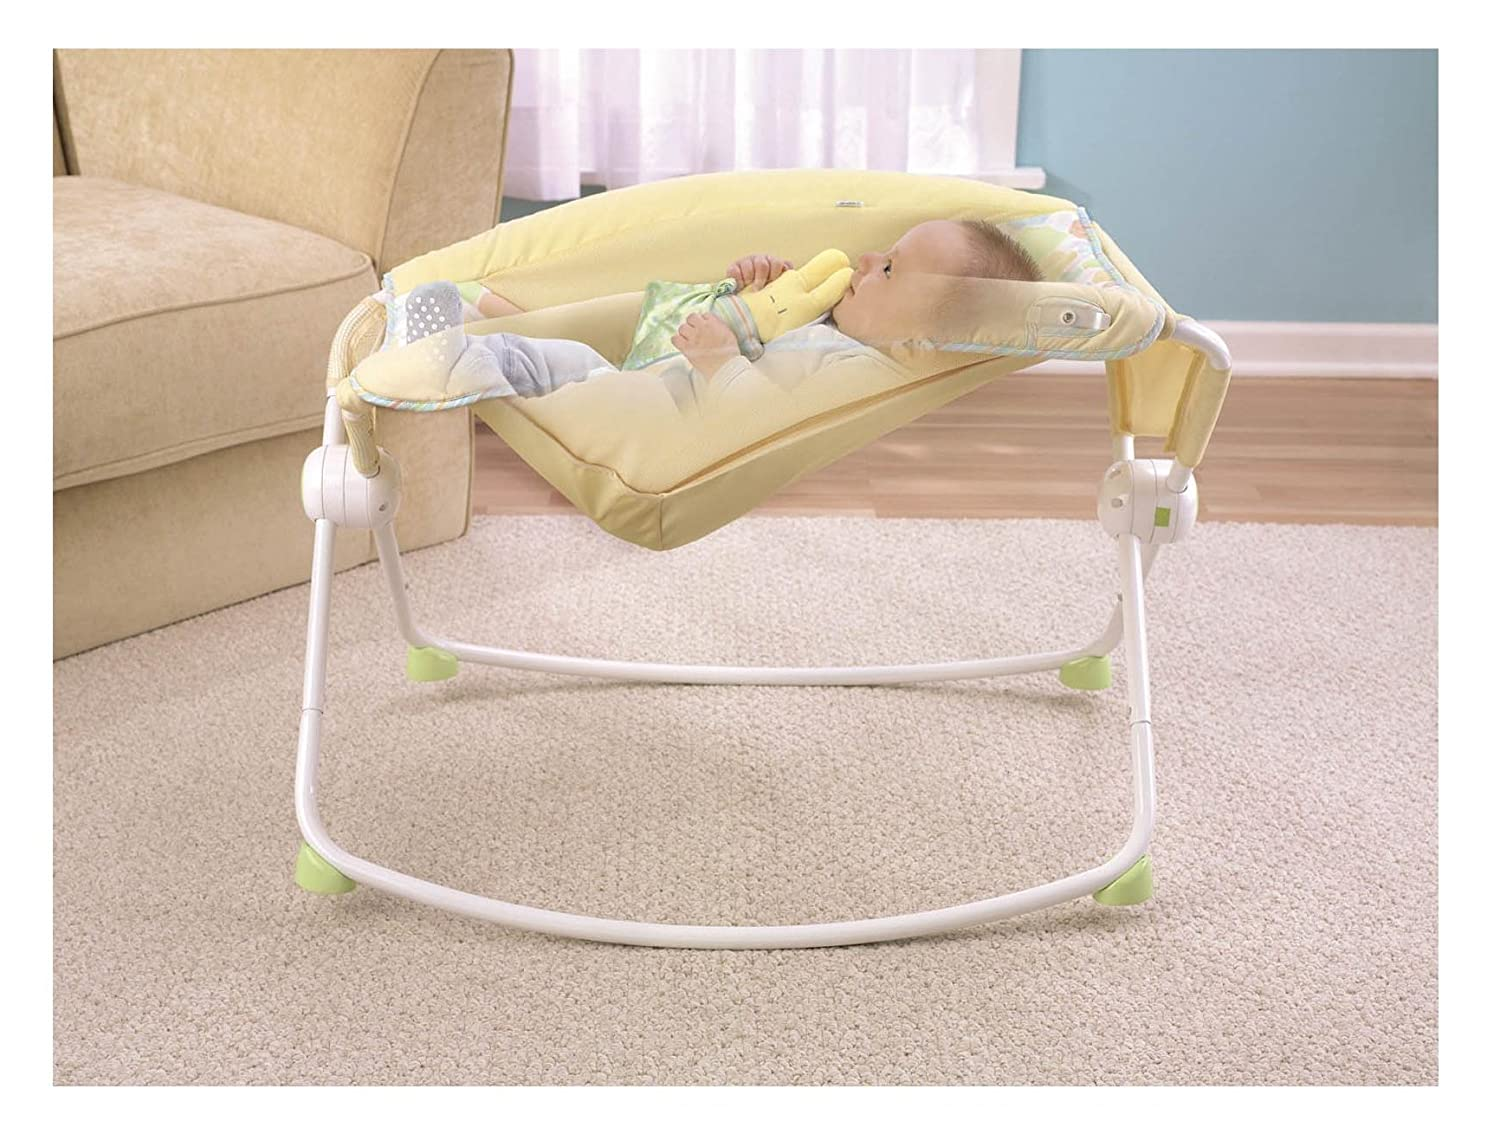 Baby bed newborn - Amazon Com Fisher Price Newborn Rock N Play Sleeper Yellow Discontinued By Manufacturer Baby